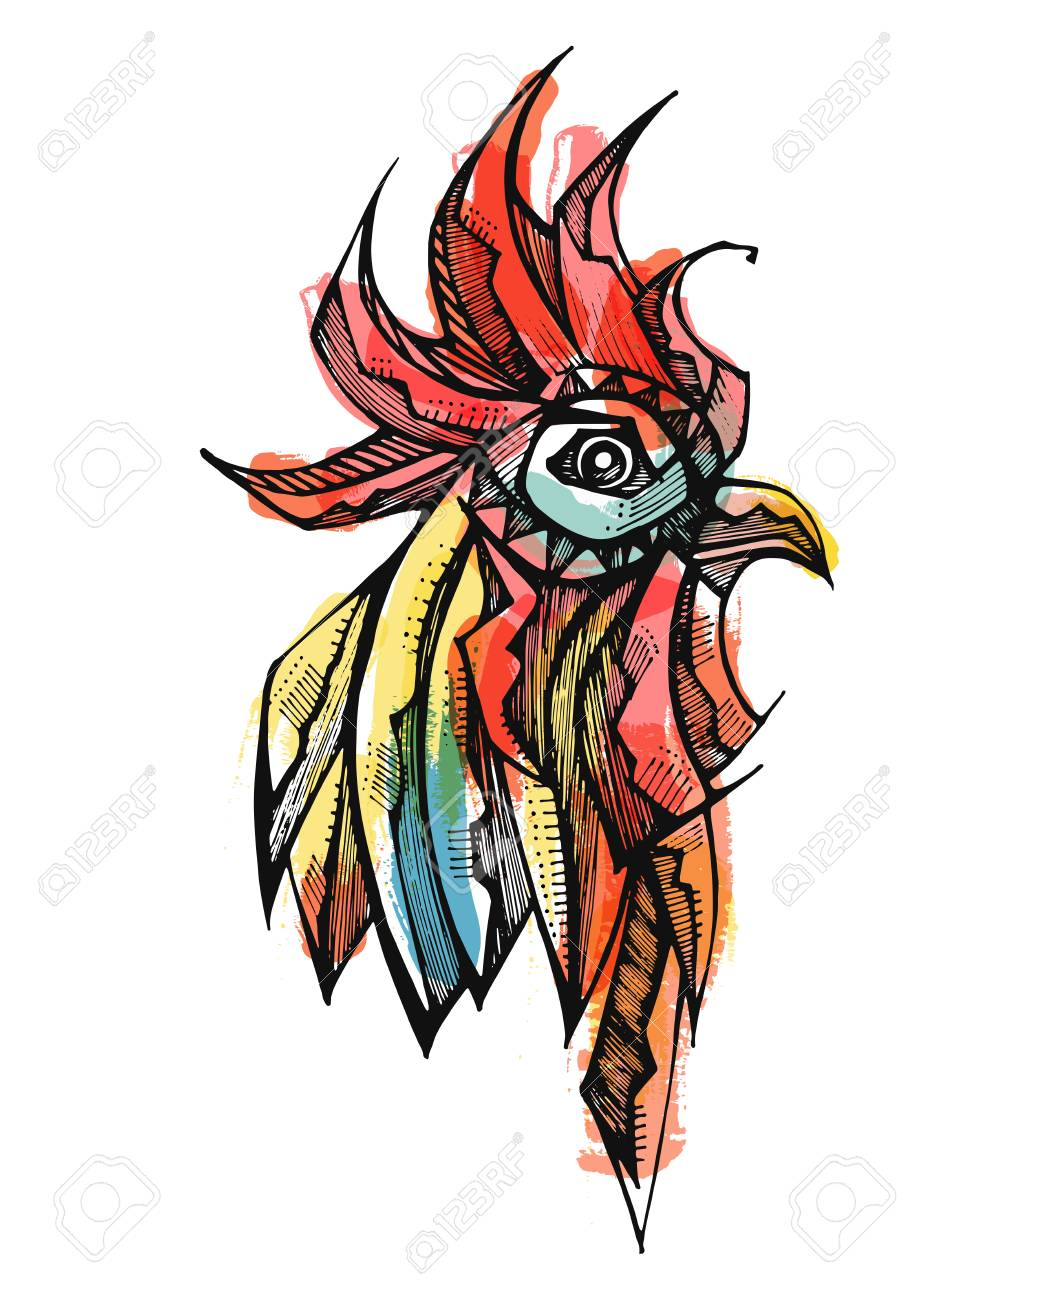 1039x1300 Hand Drawn Vector Illustration Or Drawing Of A Rooster Head